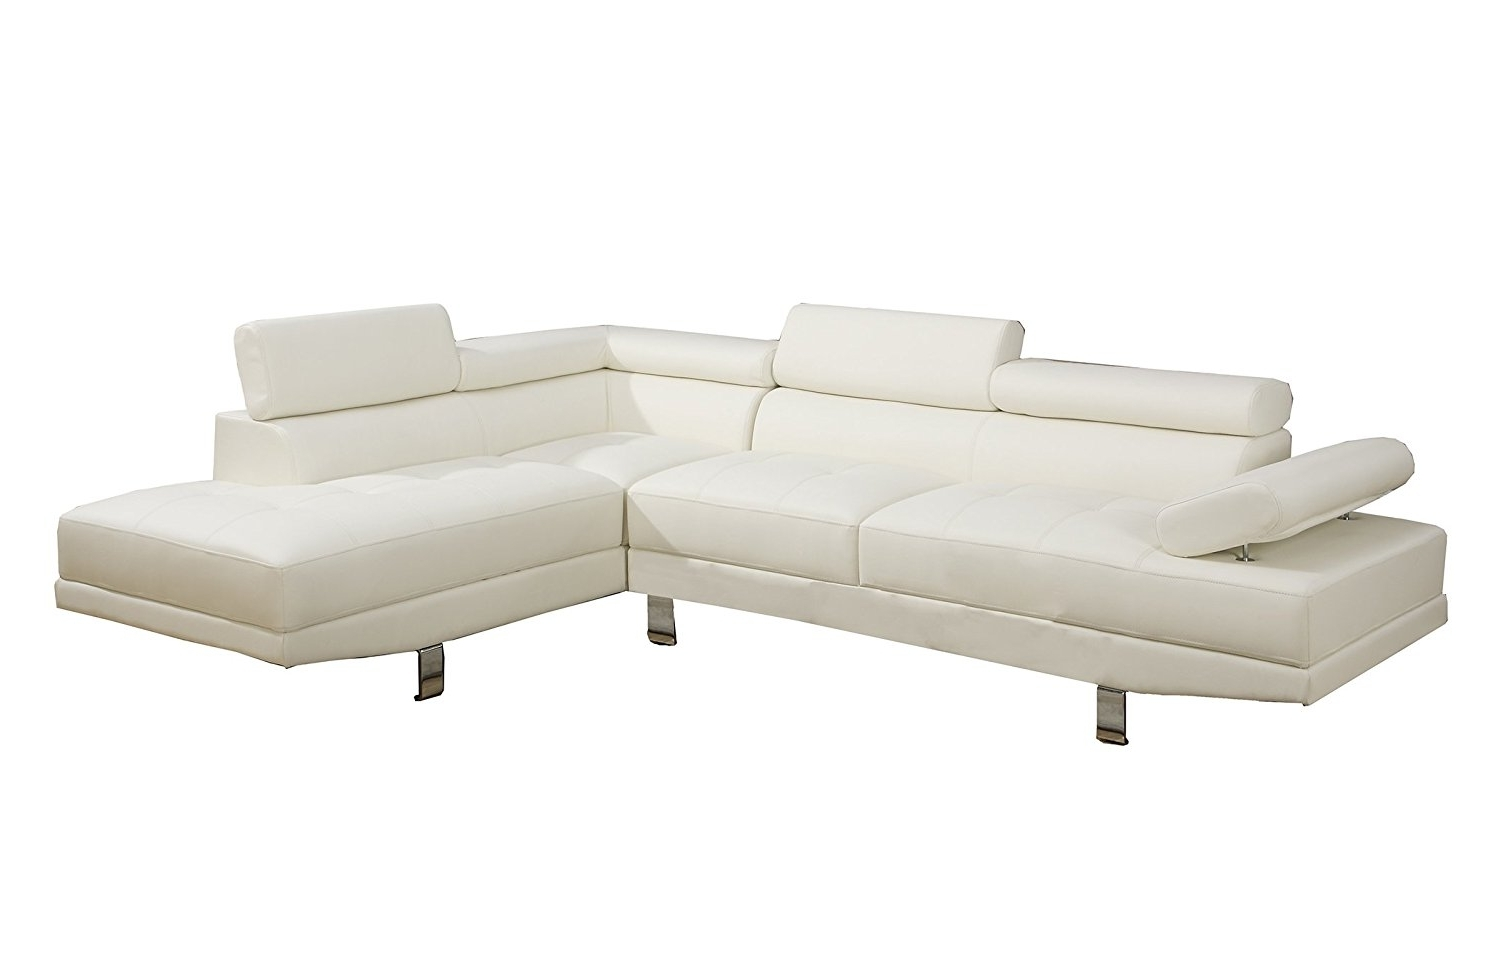 Amazon: Poundex 2 Pieces Faux Leather Sectional Right Chaise Pertaining To Famous Sectional Sofas At Amazon (View 3 of 15)